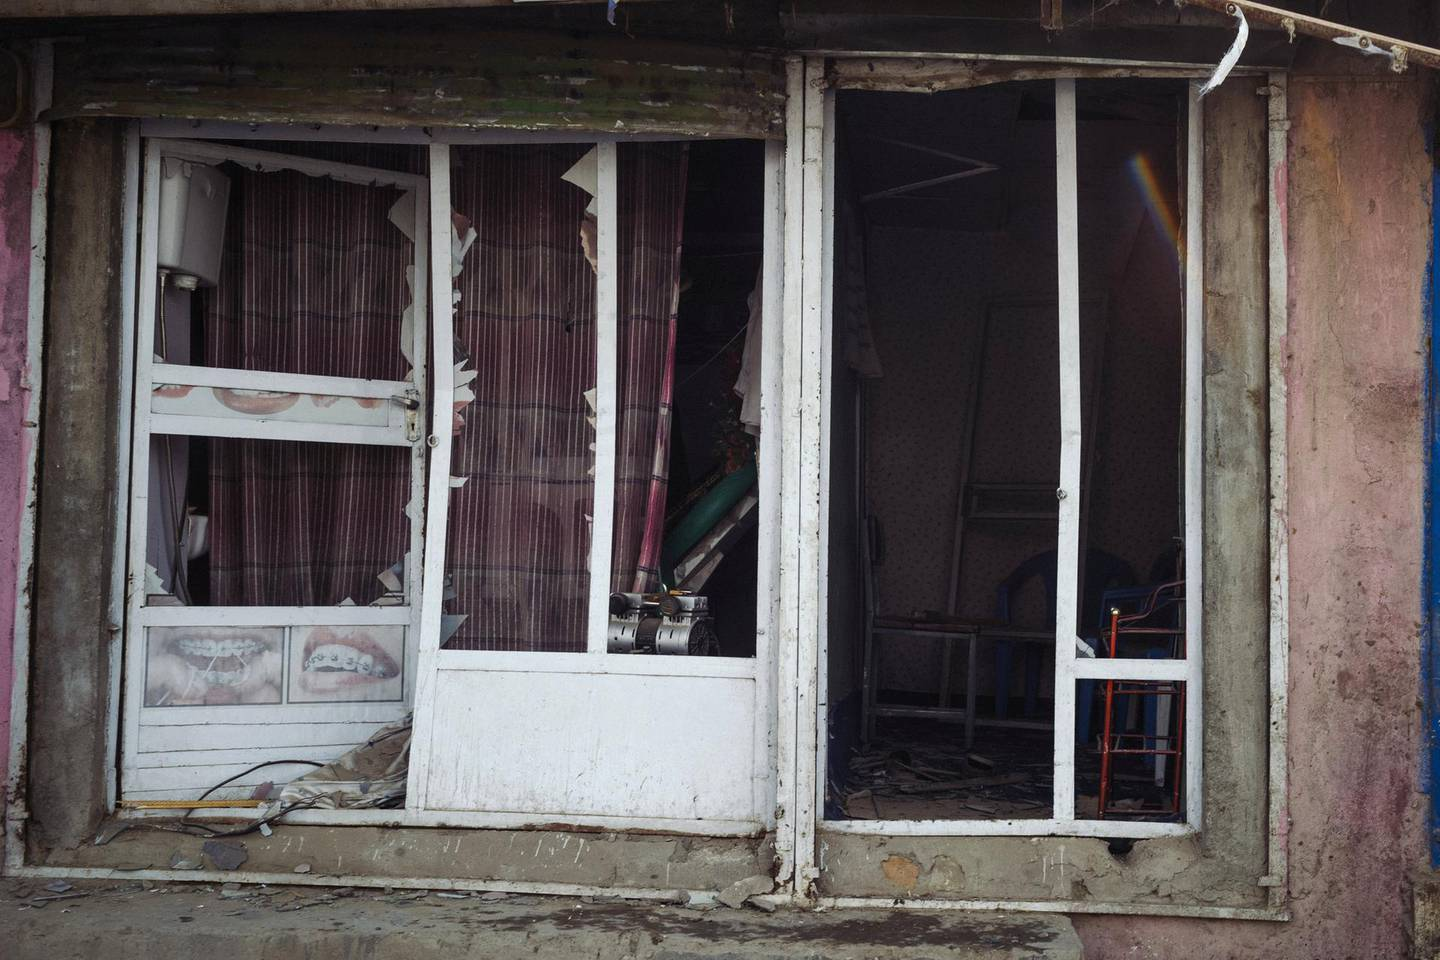 January 15th, 2019 - Kabul, Kabul, Afghanistan: A shop damaged by the explosion that targetted a foreigner compound in the Qabil Bai district of Kabul.The attack on the Green Village, a compound in Kabul that houses foreign workers and NGO's, initially killed 9 and wounded over 120 Afghans who lived in the vicinity. There was also extensive property damage to the surrounding homes and shops. Ivan Flores/The National